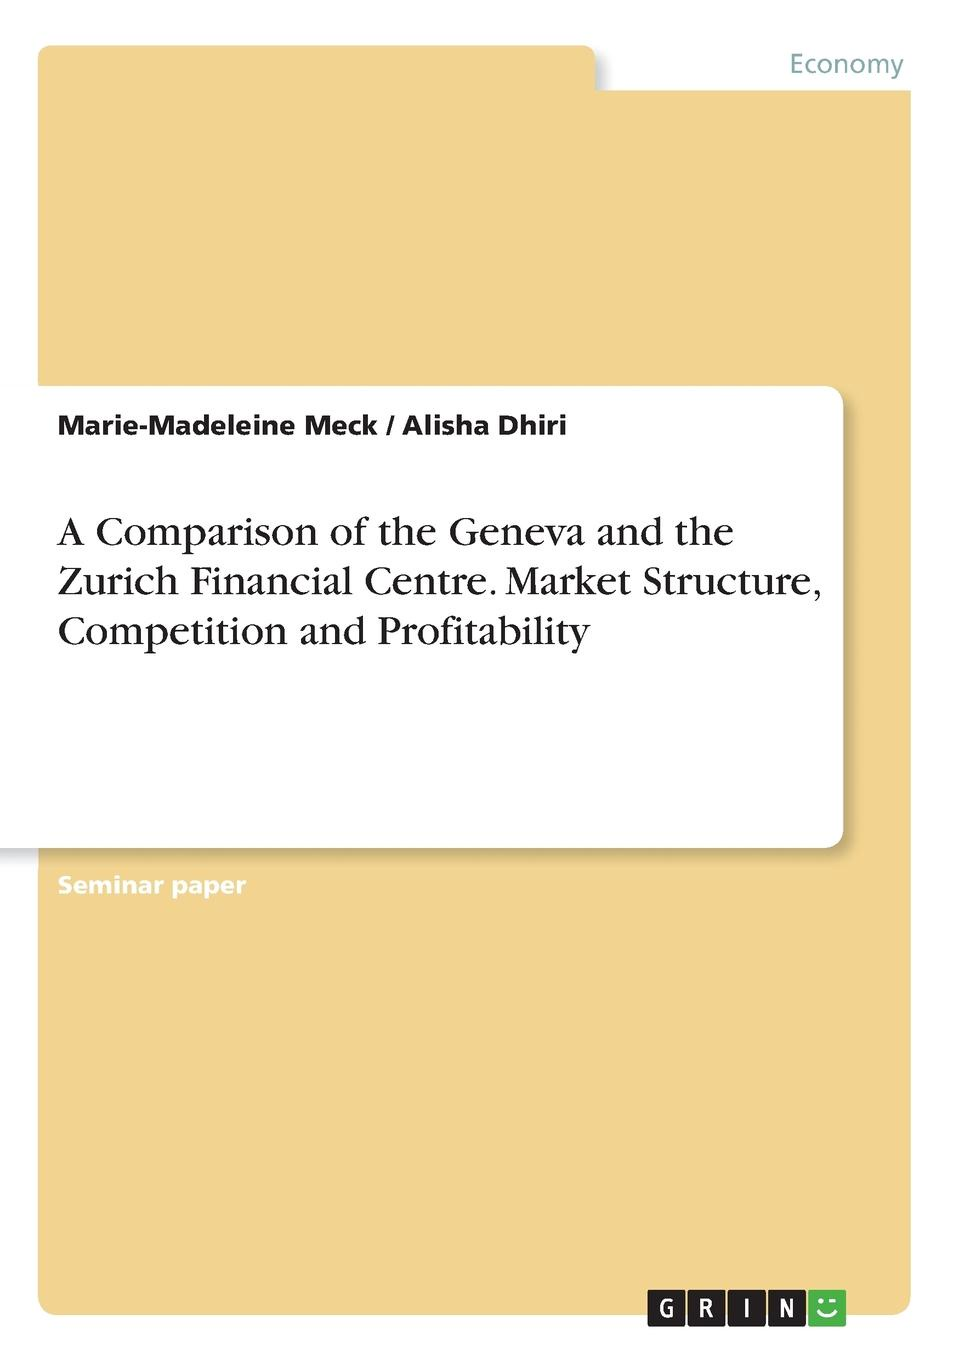 Marie-Madeleine Meck, Alisha Dhiri A Comparison of the Geneva and the Zurich Financial Centre. Market Structure, Competition and Profitability capitals of capital a history of international financial centres 1780 2005